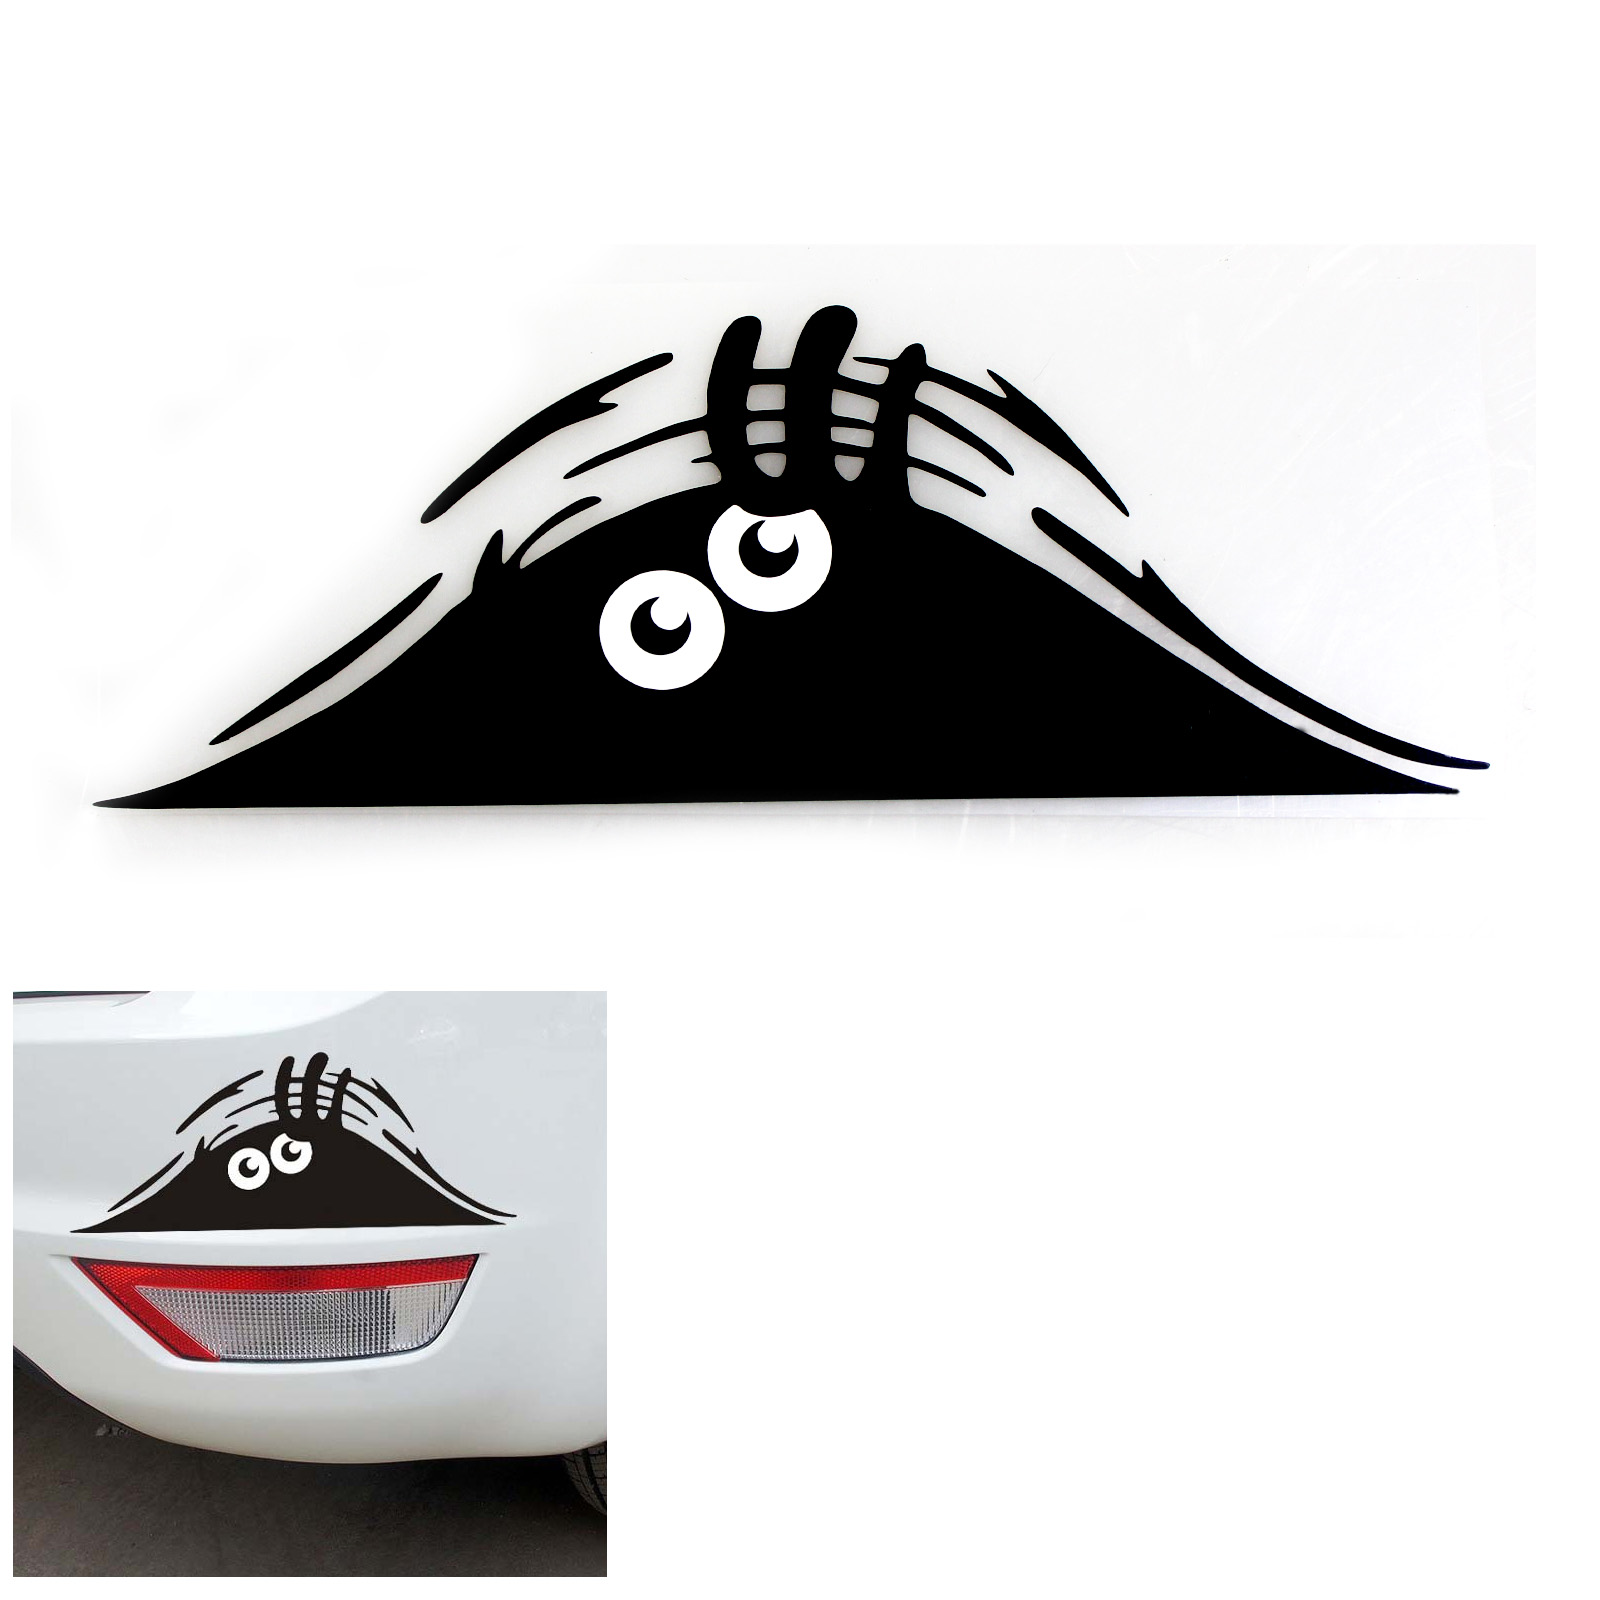 Peeking Monster For Auto Car Walls Windows Funny Sticker Graphic - Vinyl decal stickers for cars